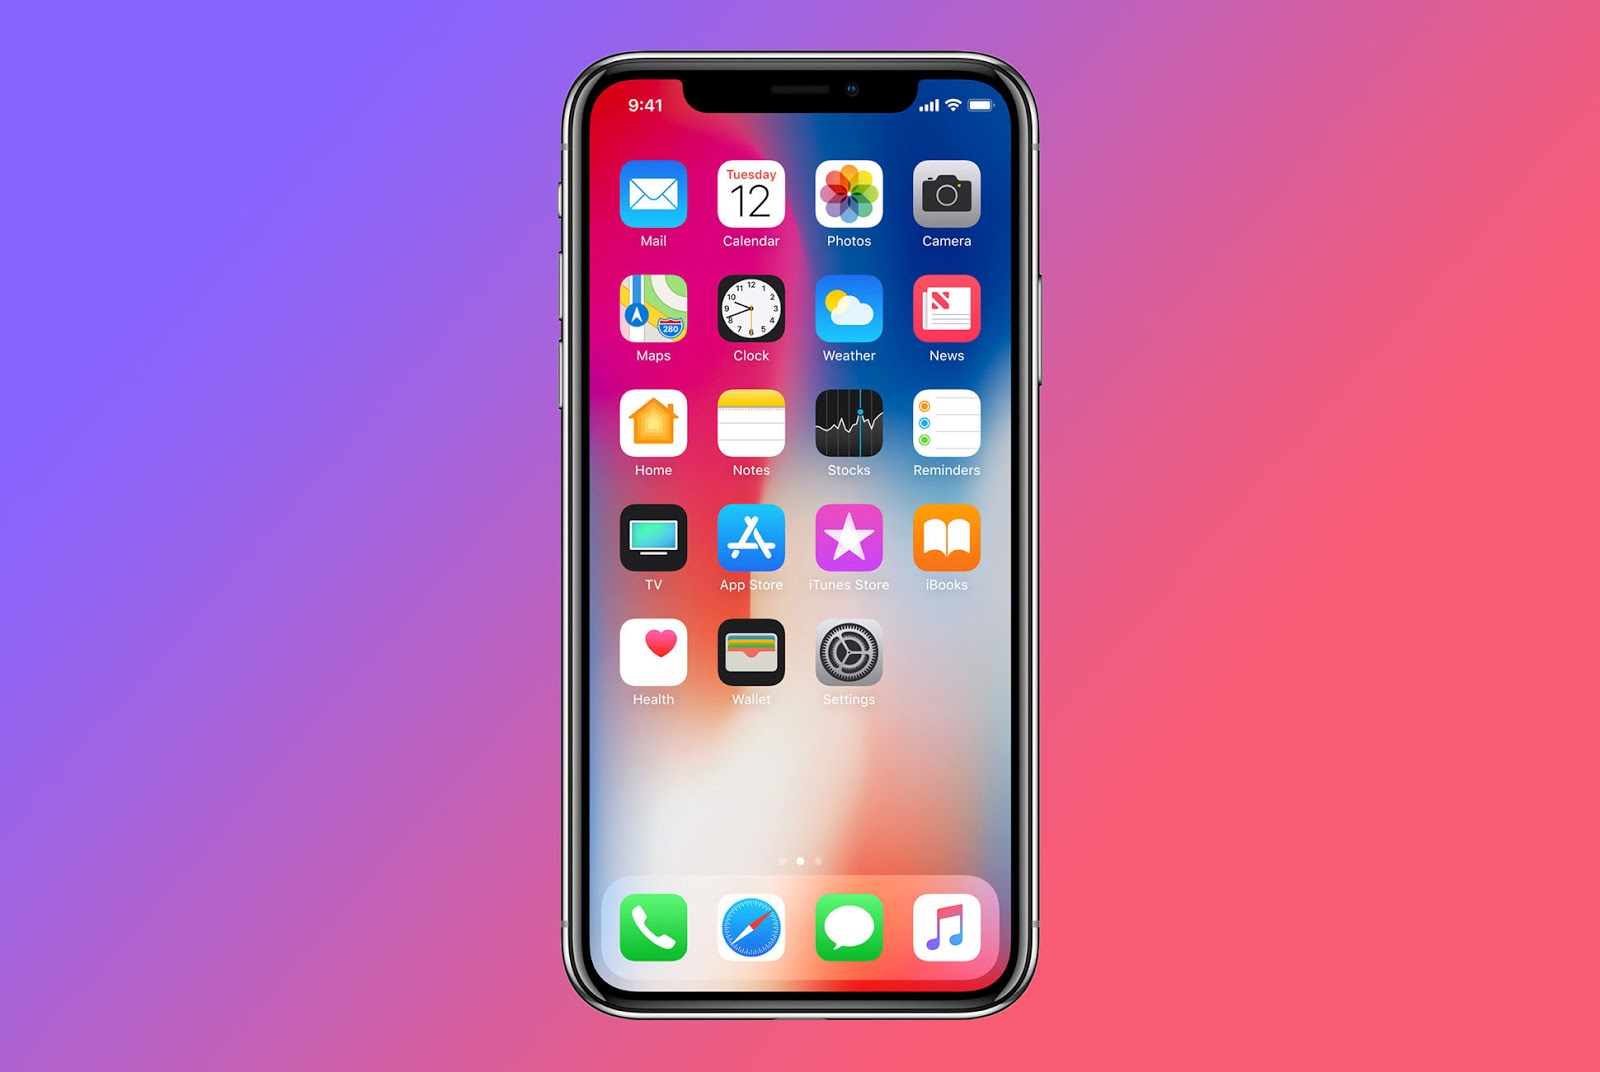 T-Mobile is Offering $300 OFF on iPhone X, Trade-in deals